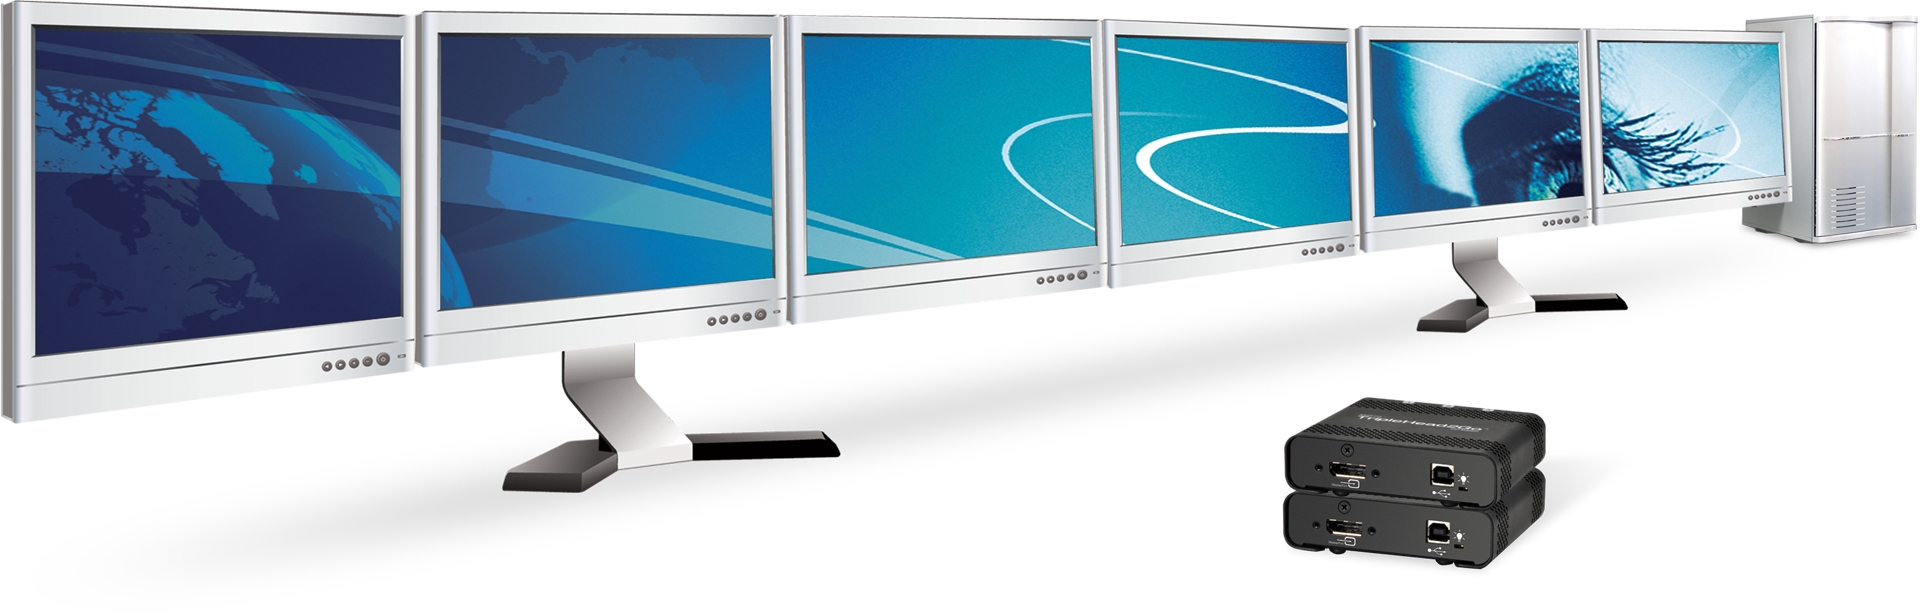 Two Matrox TripleHead2Go drive a six monitor configuration across a 6x1 stretched desktop